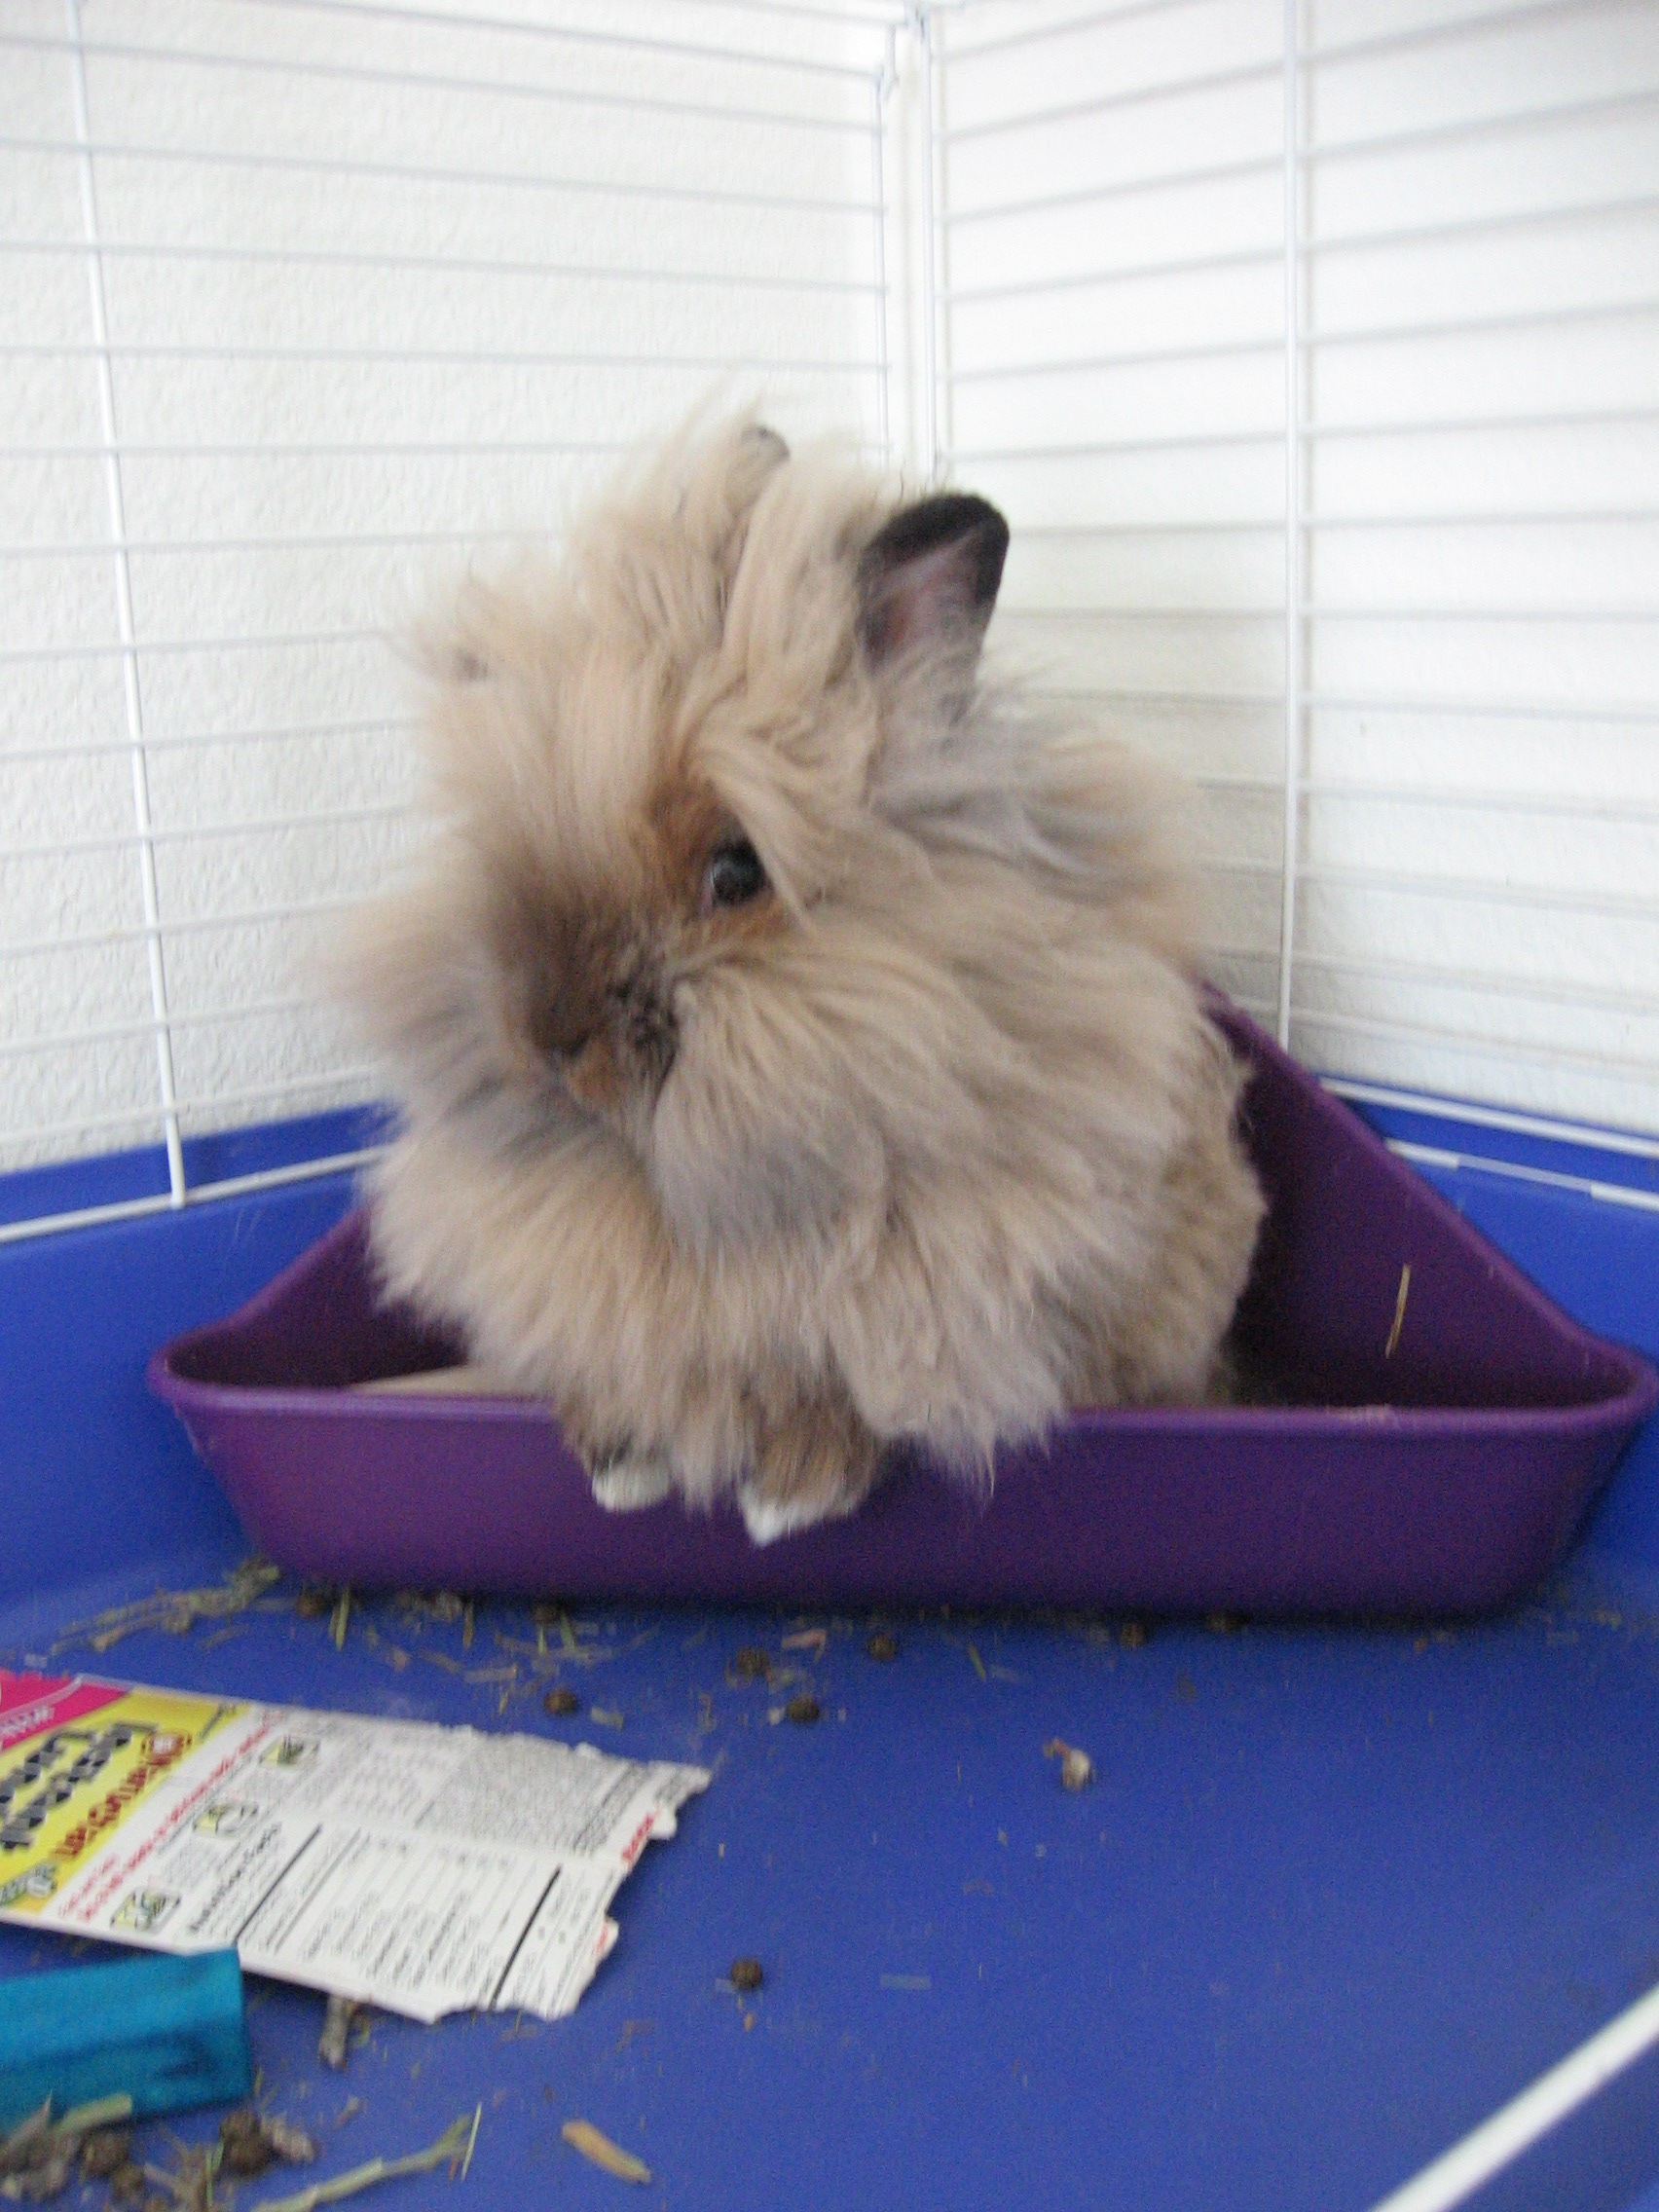 Rabbit in litter box. Image via Wikipedia.